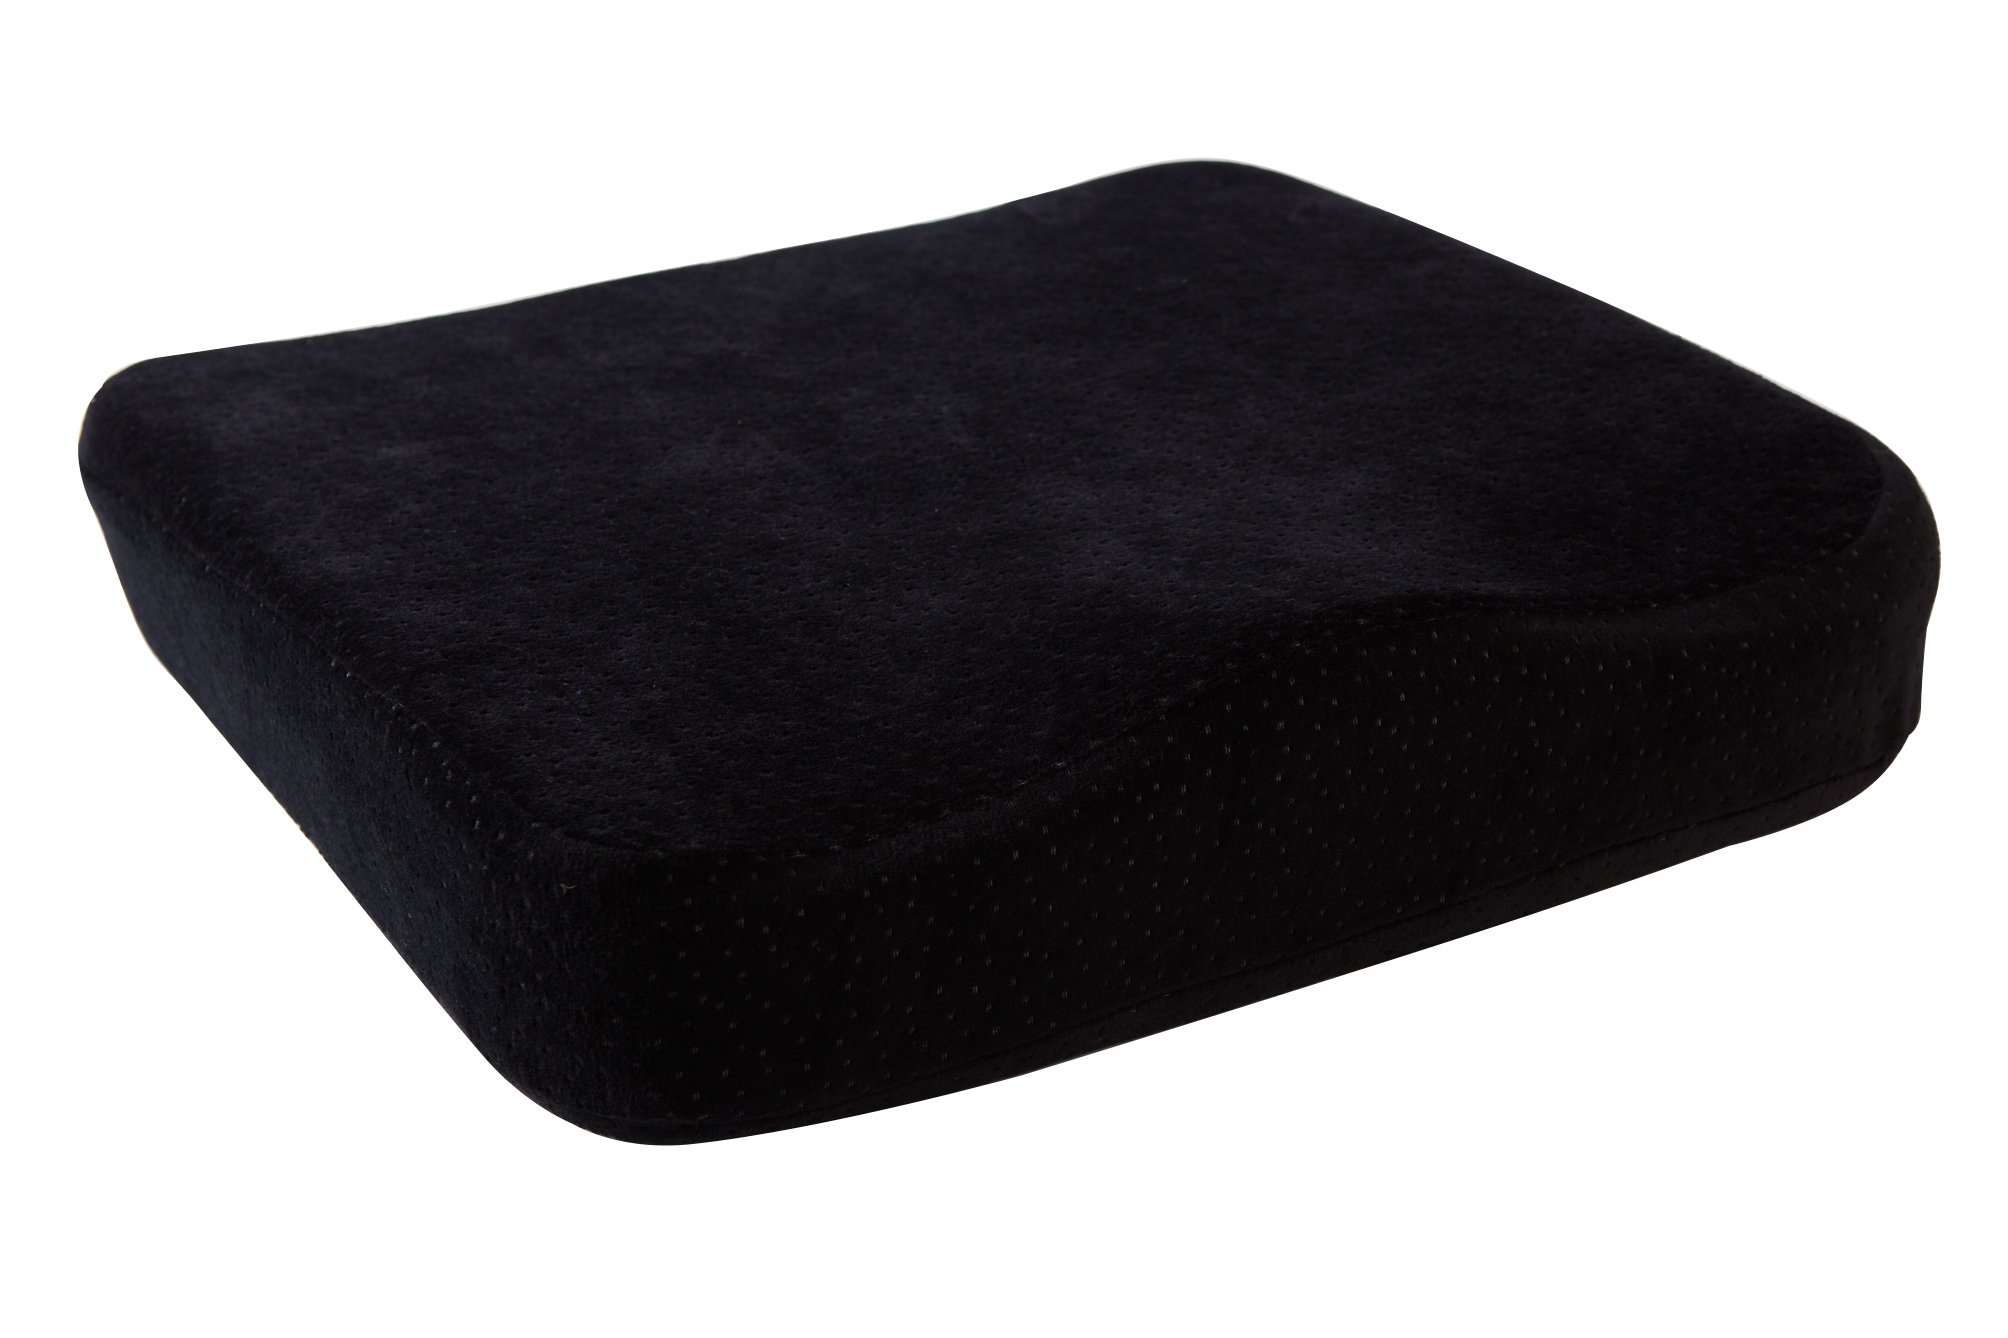 AERIS Memory Foam Seat Cushion Premium Large Office Chair Pad with a Buckle to Prevent Sliding-Car Machine Washable Black Plush Velour Cover by AERIS (Image #3)